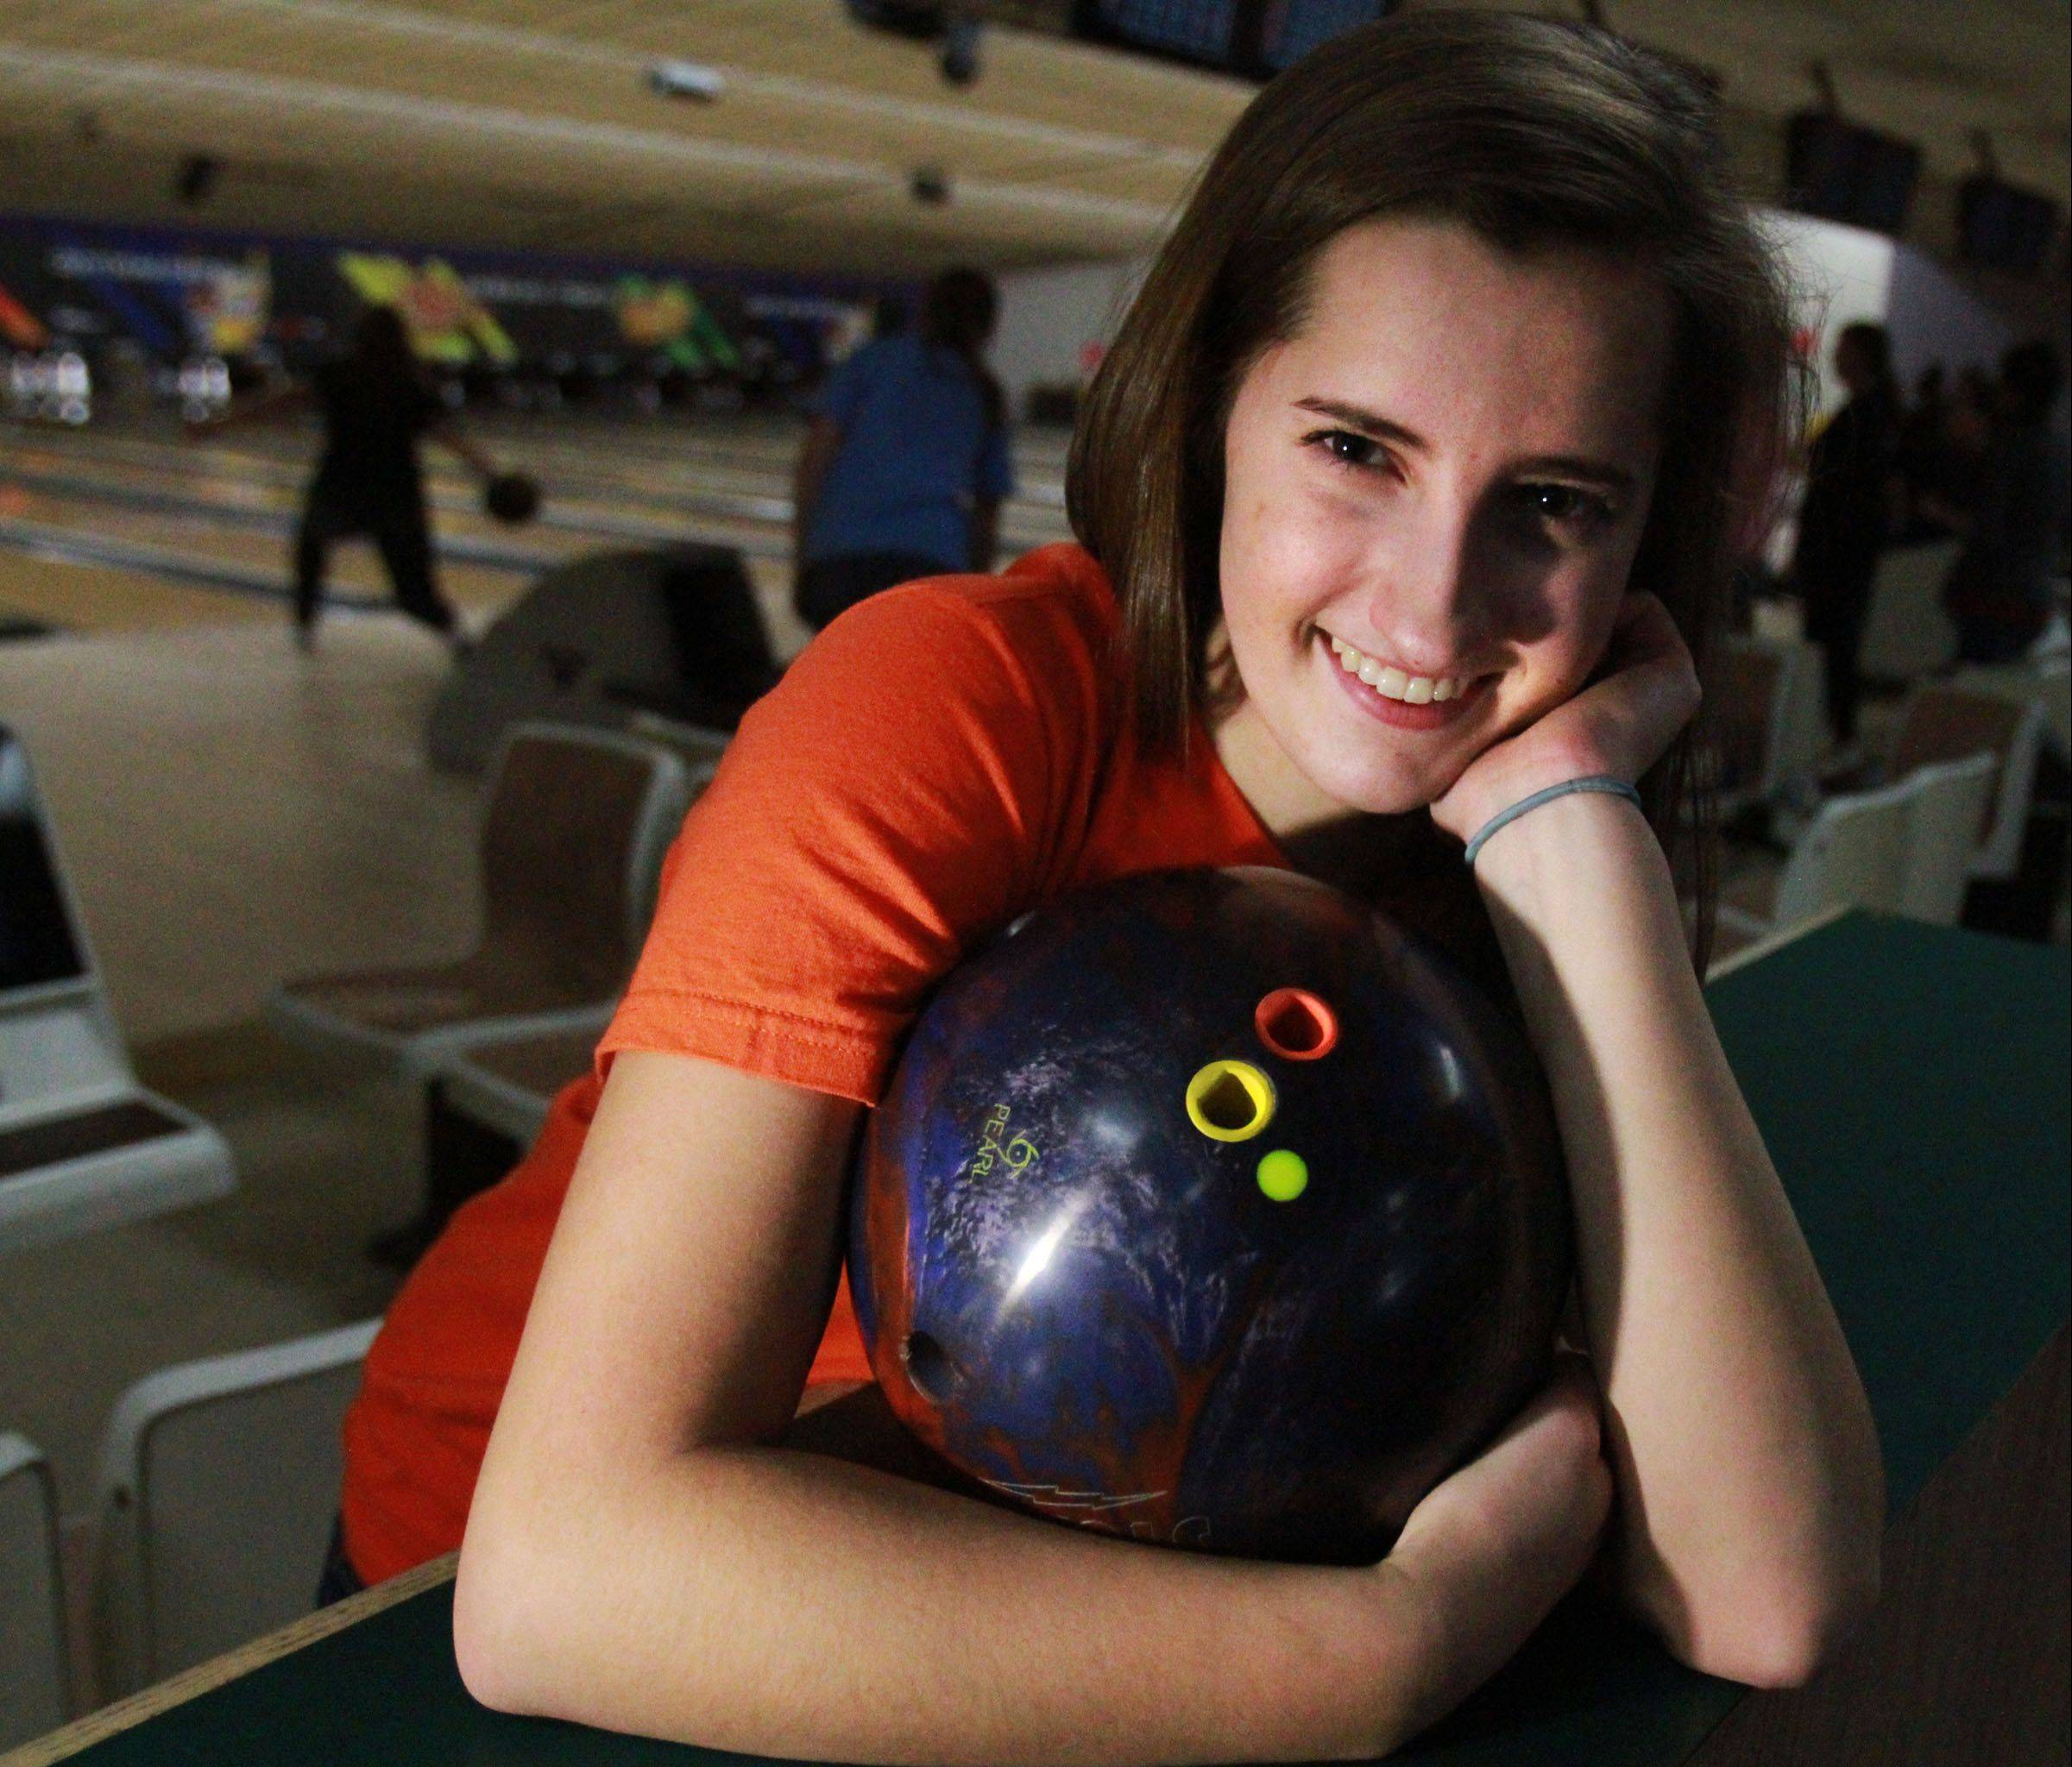 Sarah Wille aims to make it another great season for Hoffman Estates' girls bowling team.